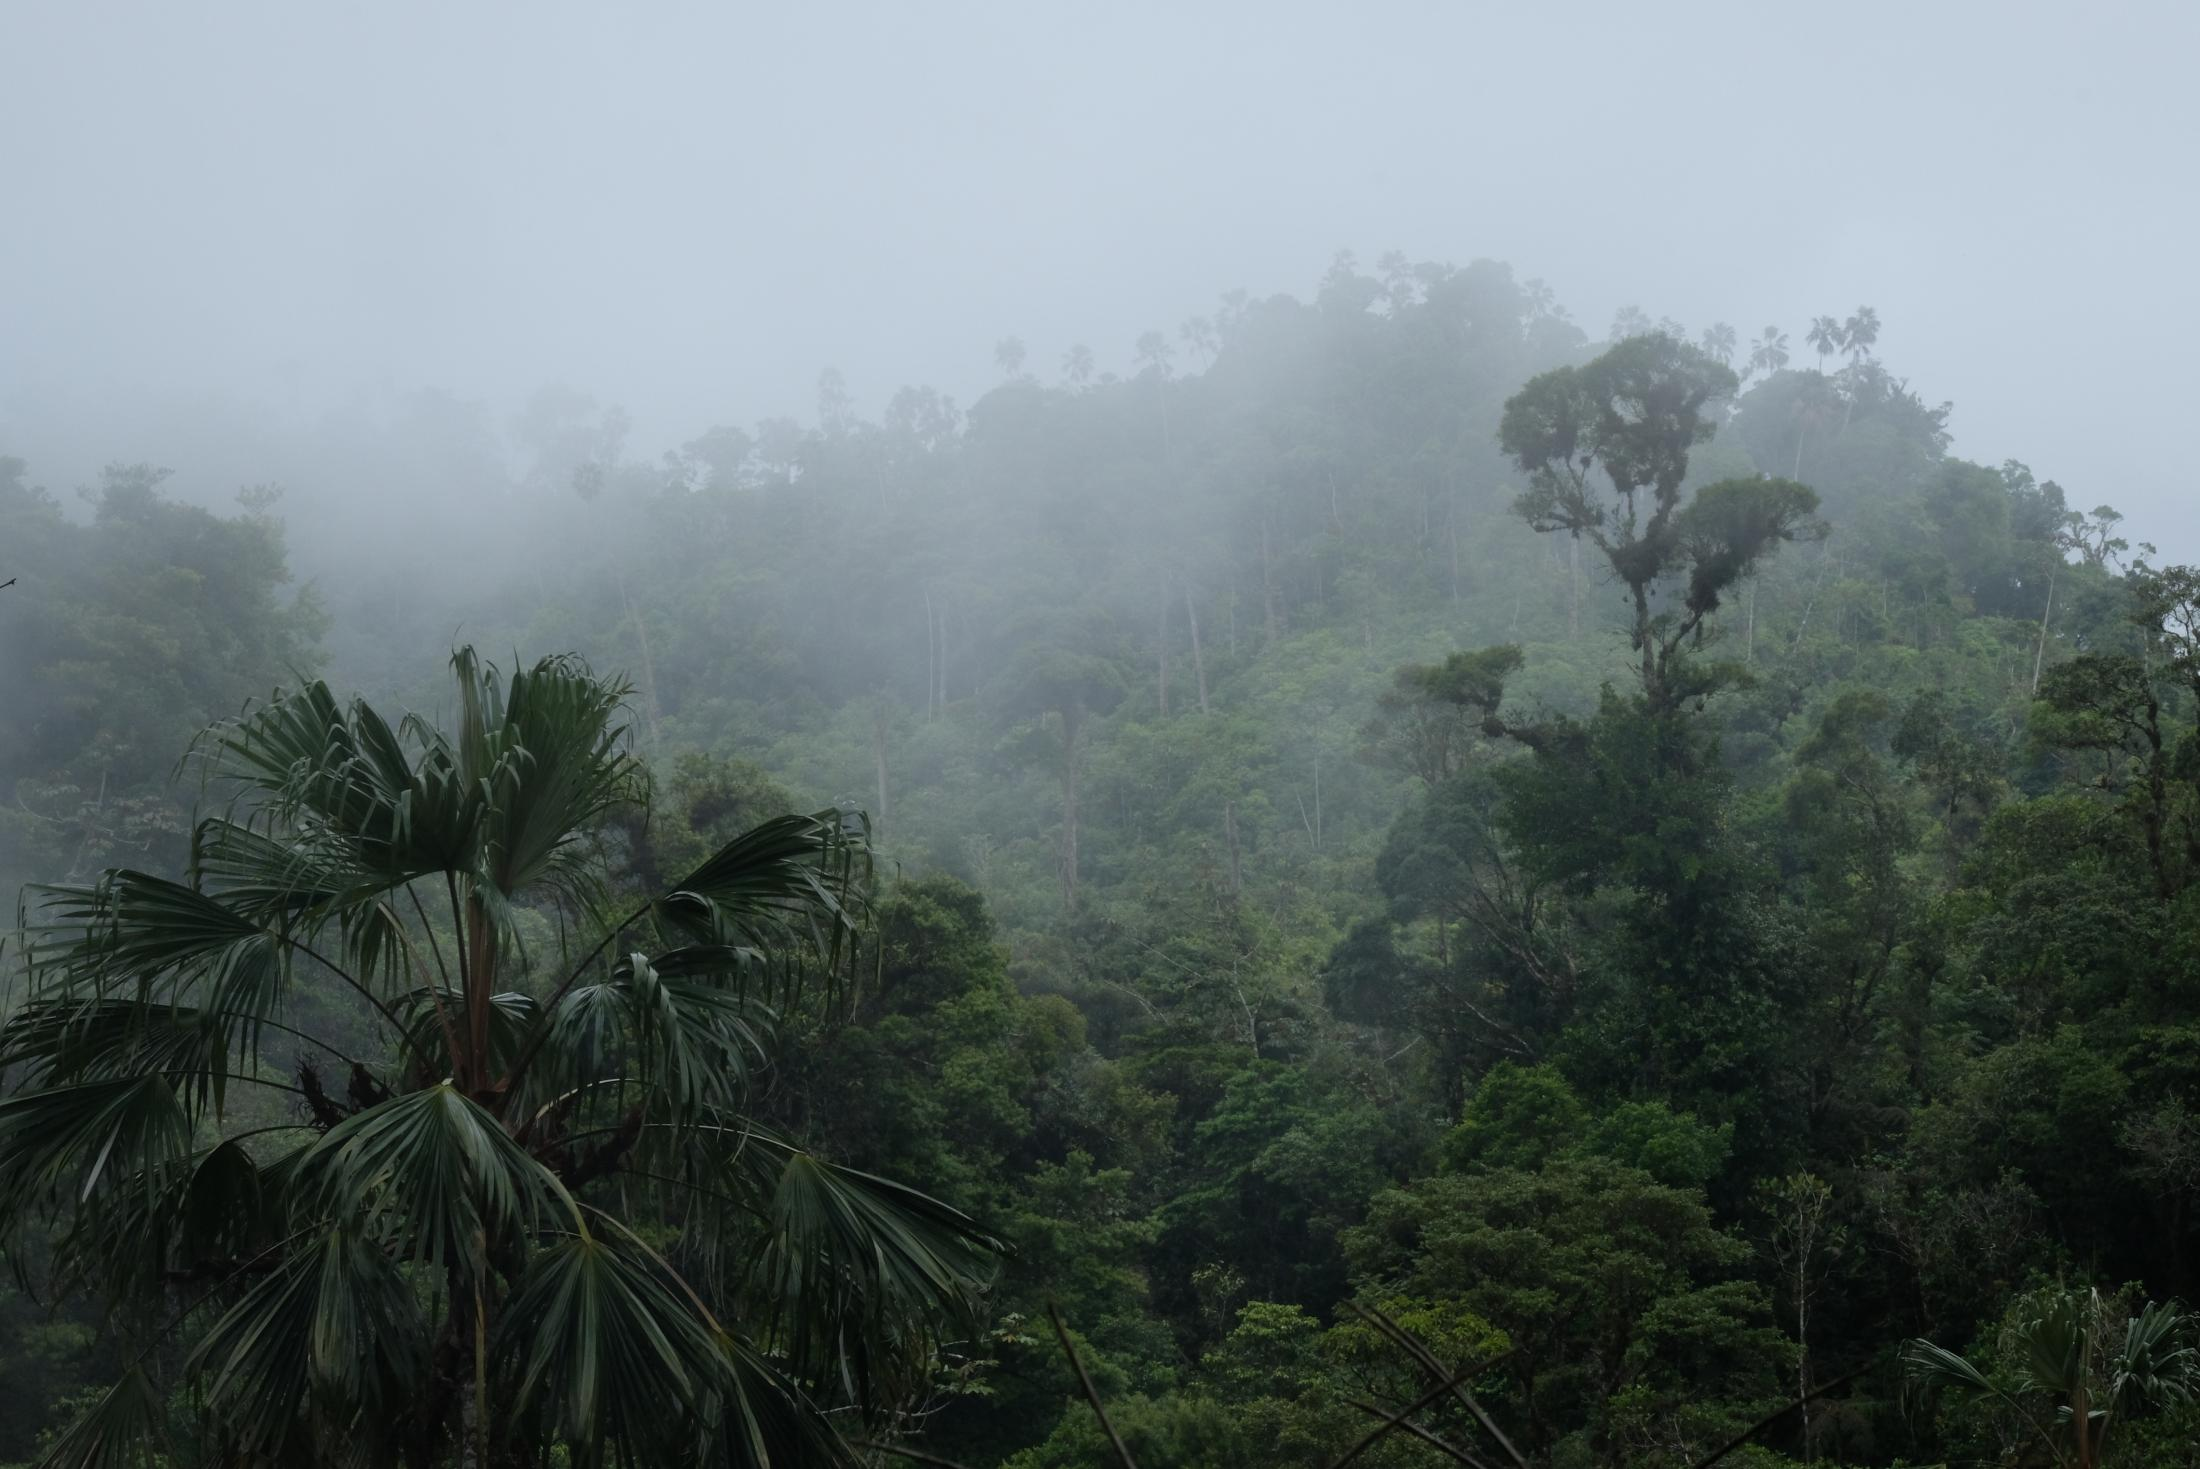 Tropical Mountain Cloud Forests boast high levels of endemism due to their microclimates and topographic heterogeneity. Incoming clouds provide a high proportion of the water used up in the forest. Epiphyte plants take charge of absorbing the water droplets and sharing it with their tree host.